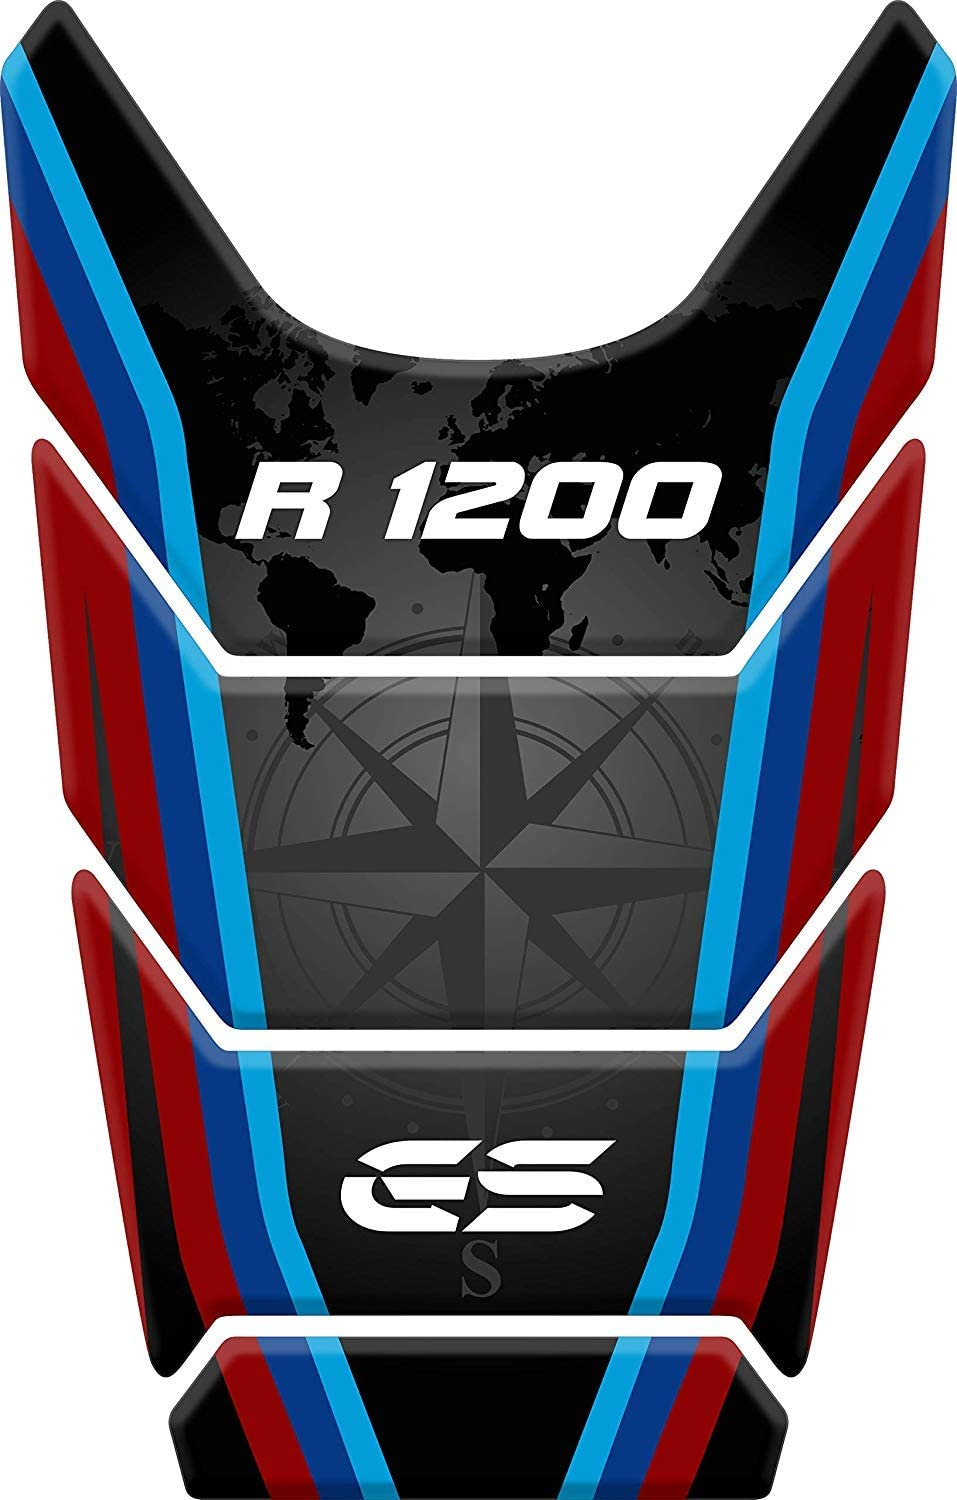 Stickers for fuel tank tankpad 3D effect resin adhesive sticker compatible with BM.W BM.W R 1200 GS R1200GS ADV Adventure (black/red/blue)